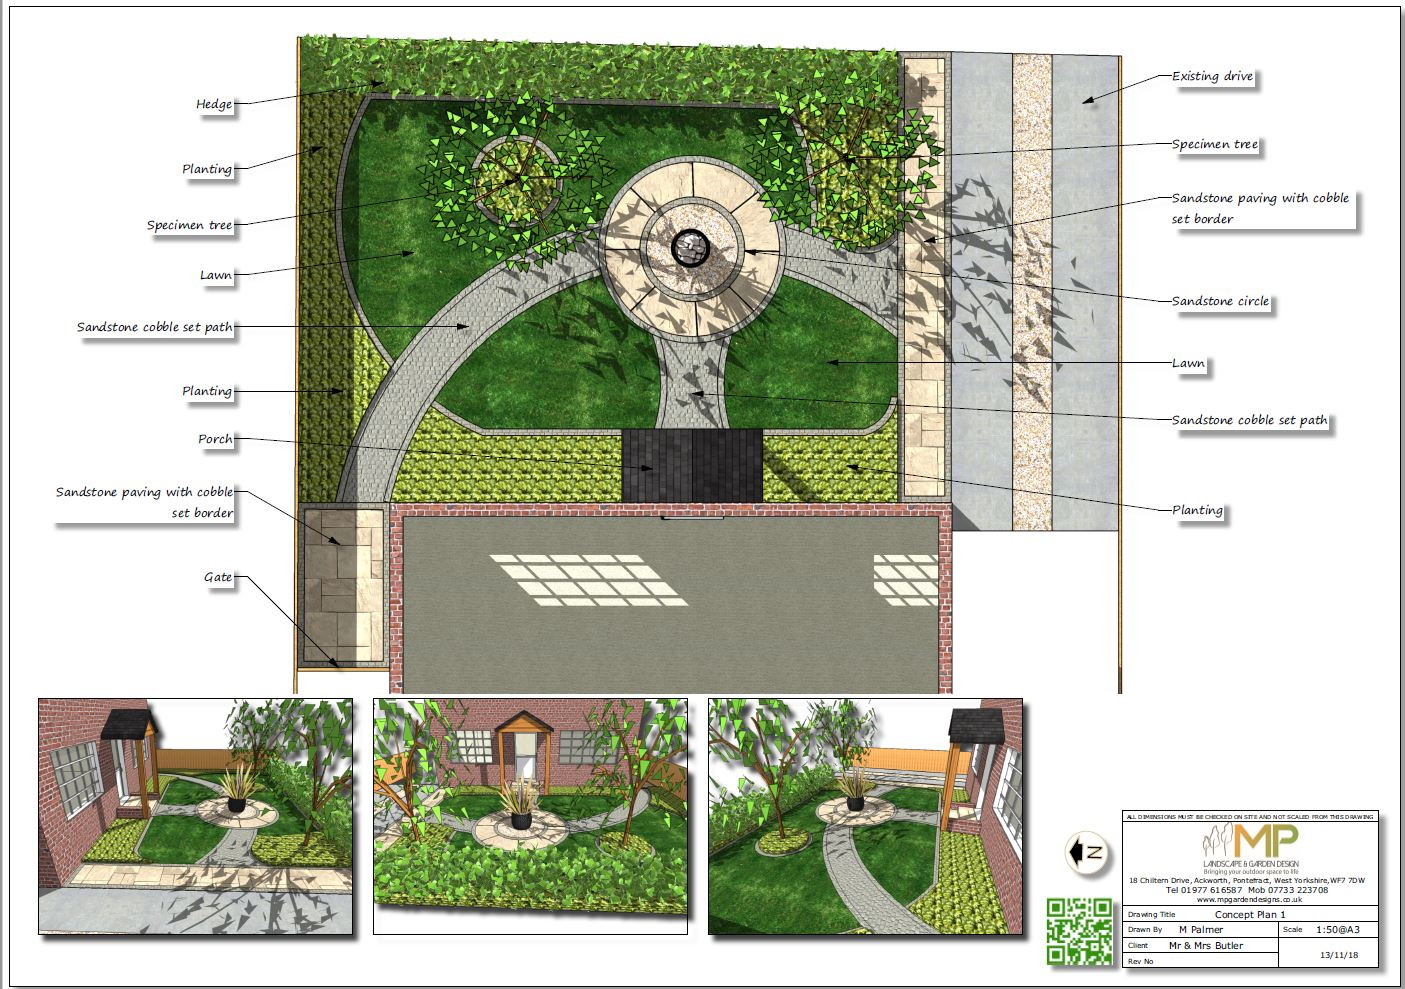 Colour garden design concept plan-1 for a front garden in Ackworth, Pontefract.